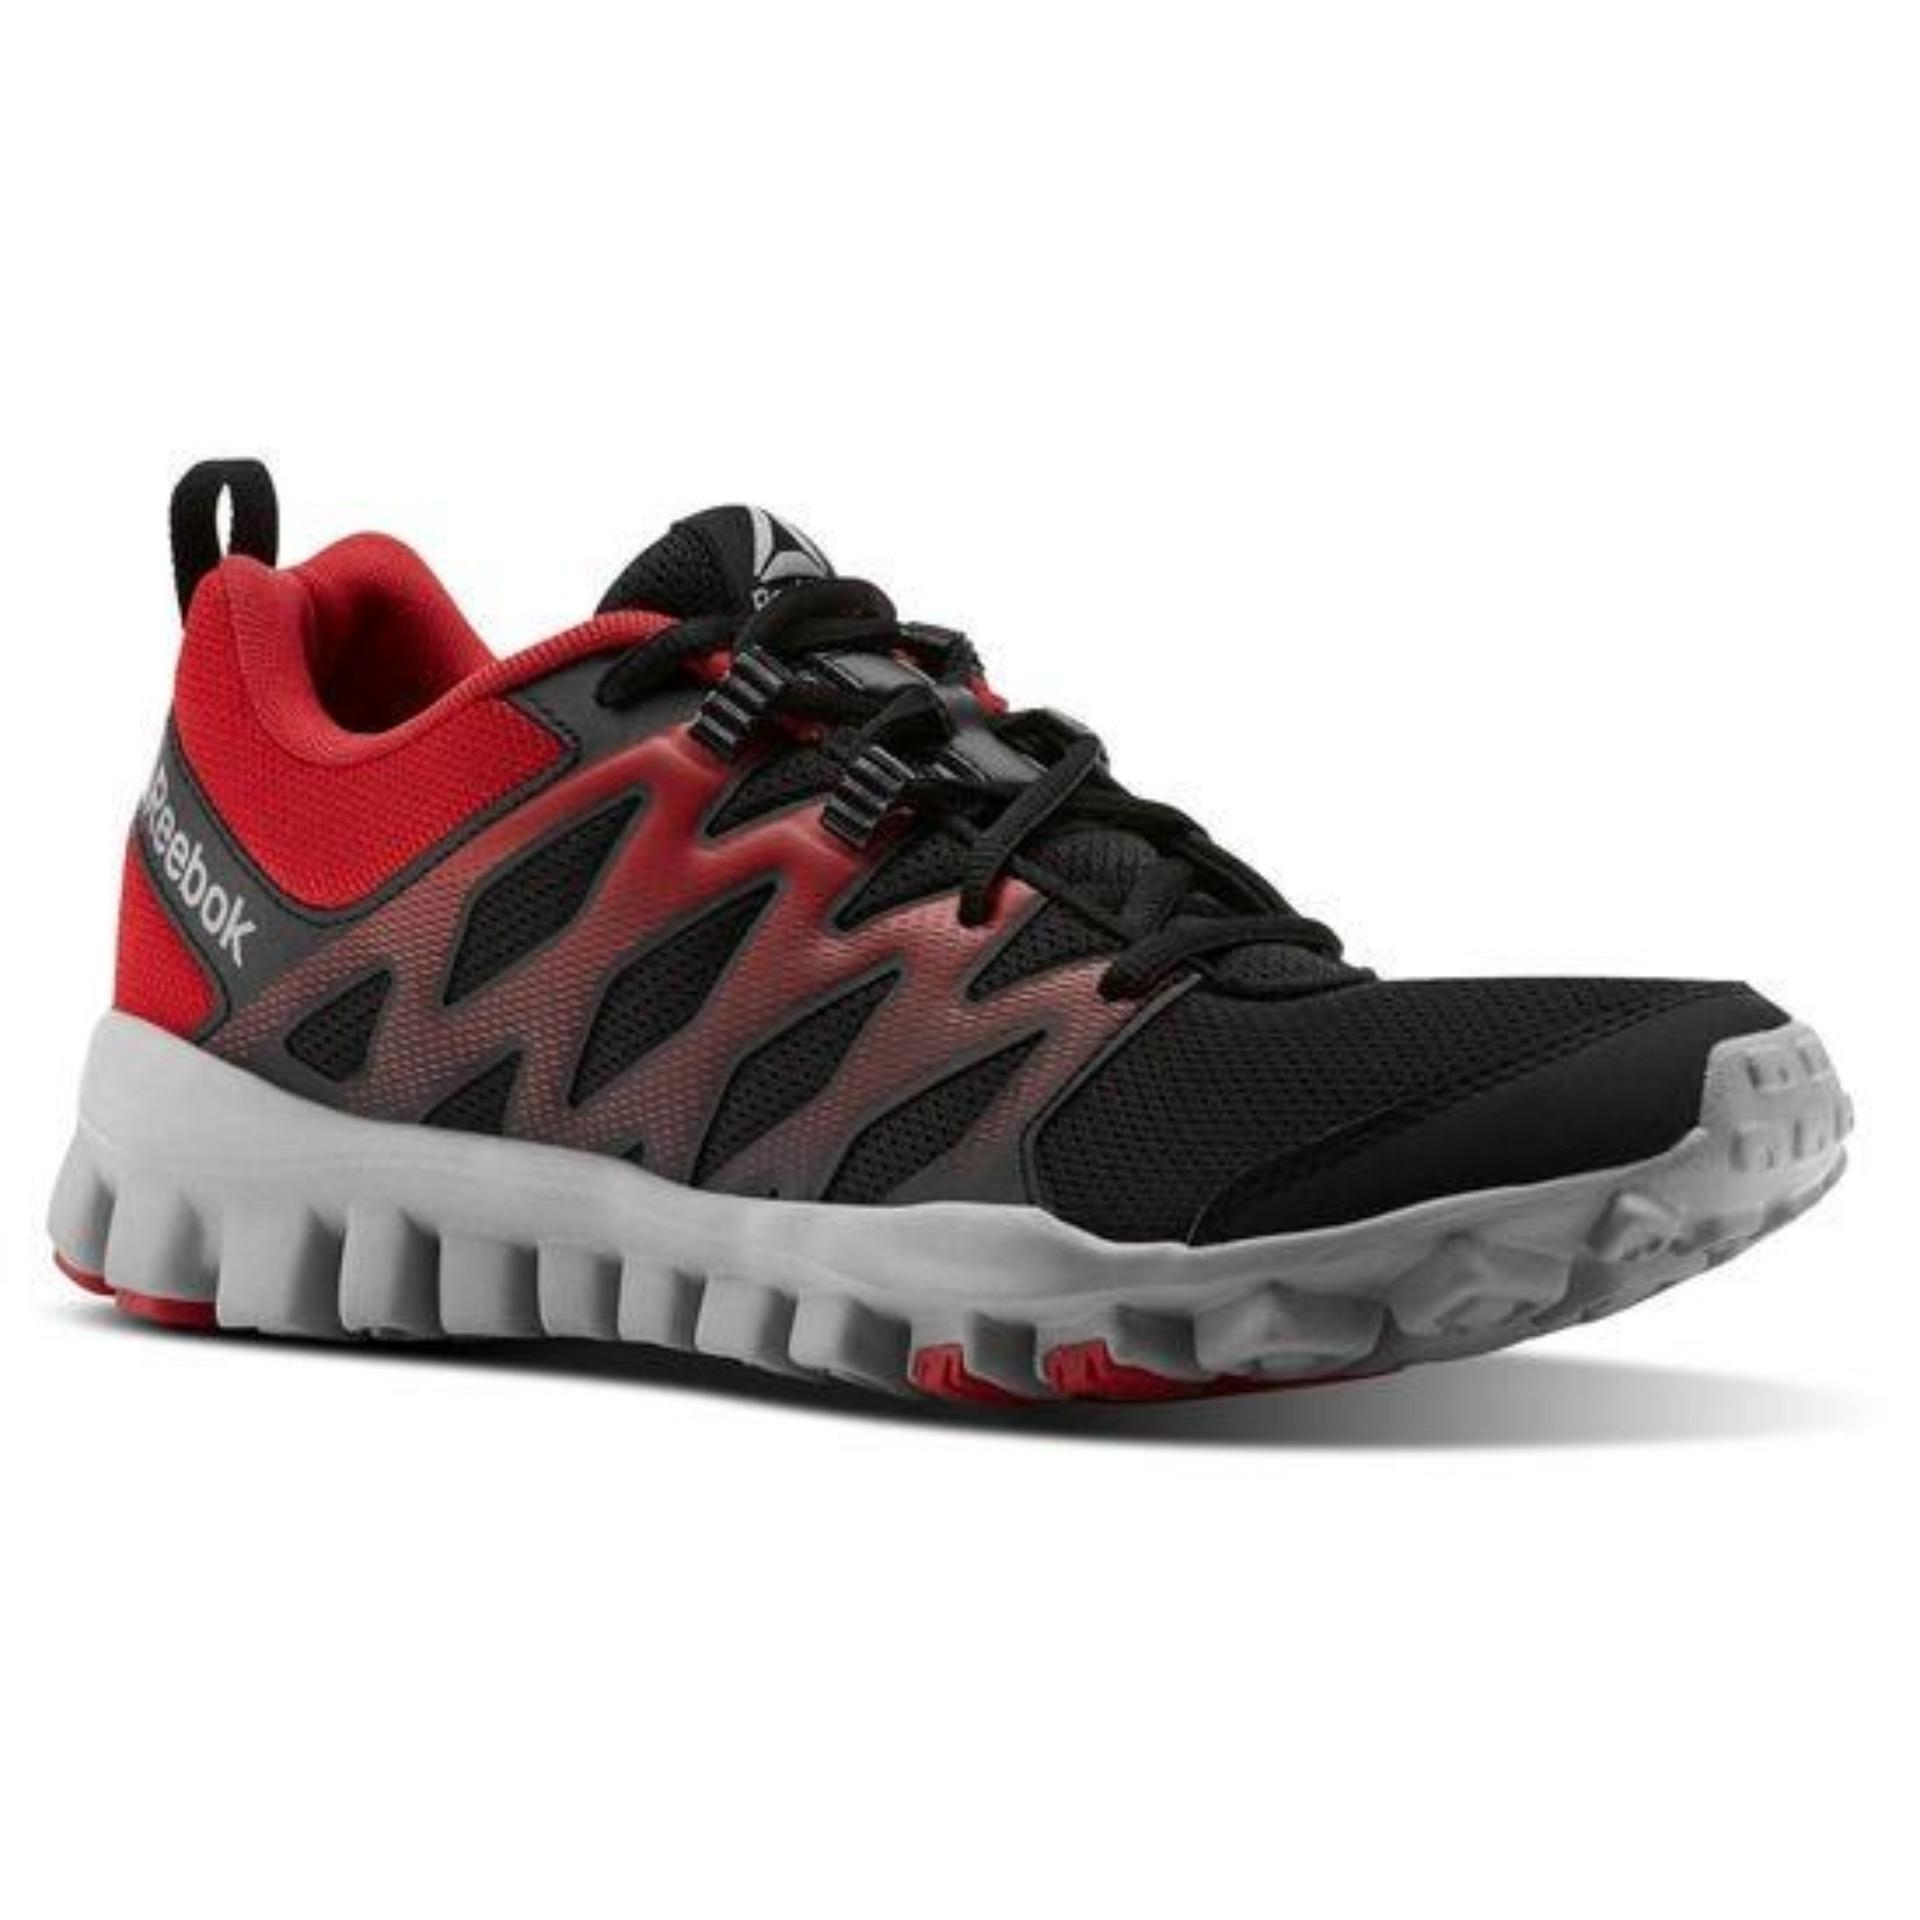 Reebok Men S Realflex Train 4 Sneakers Cn1165 Price Comparison